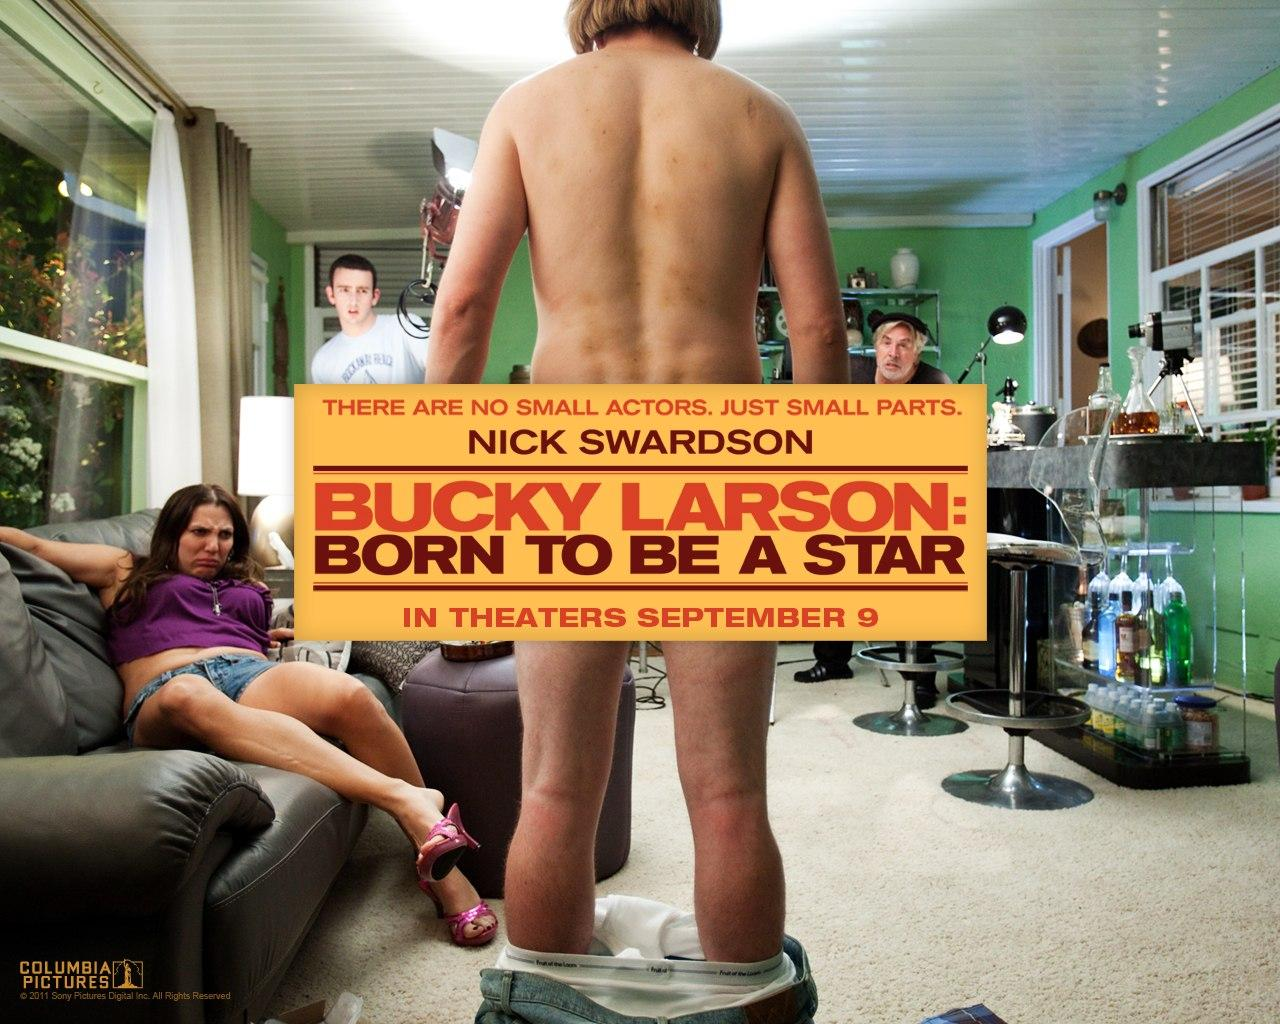 nick swardson in bucky larson born to be a star hd wallpaper   8435 1280x1024